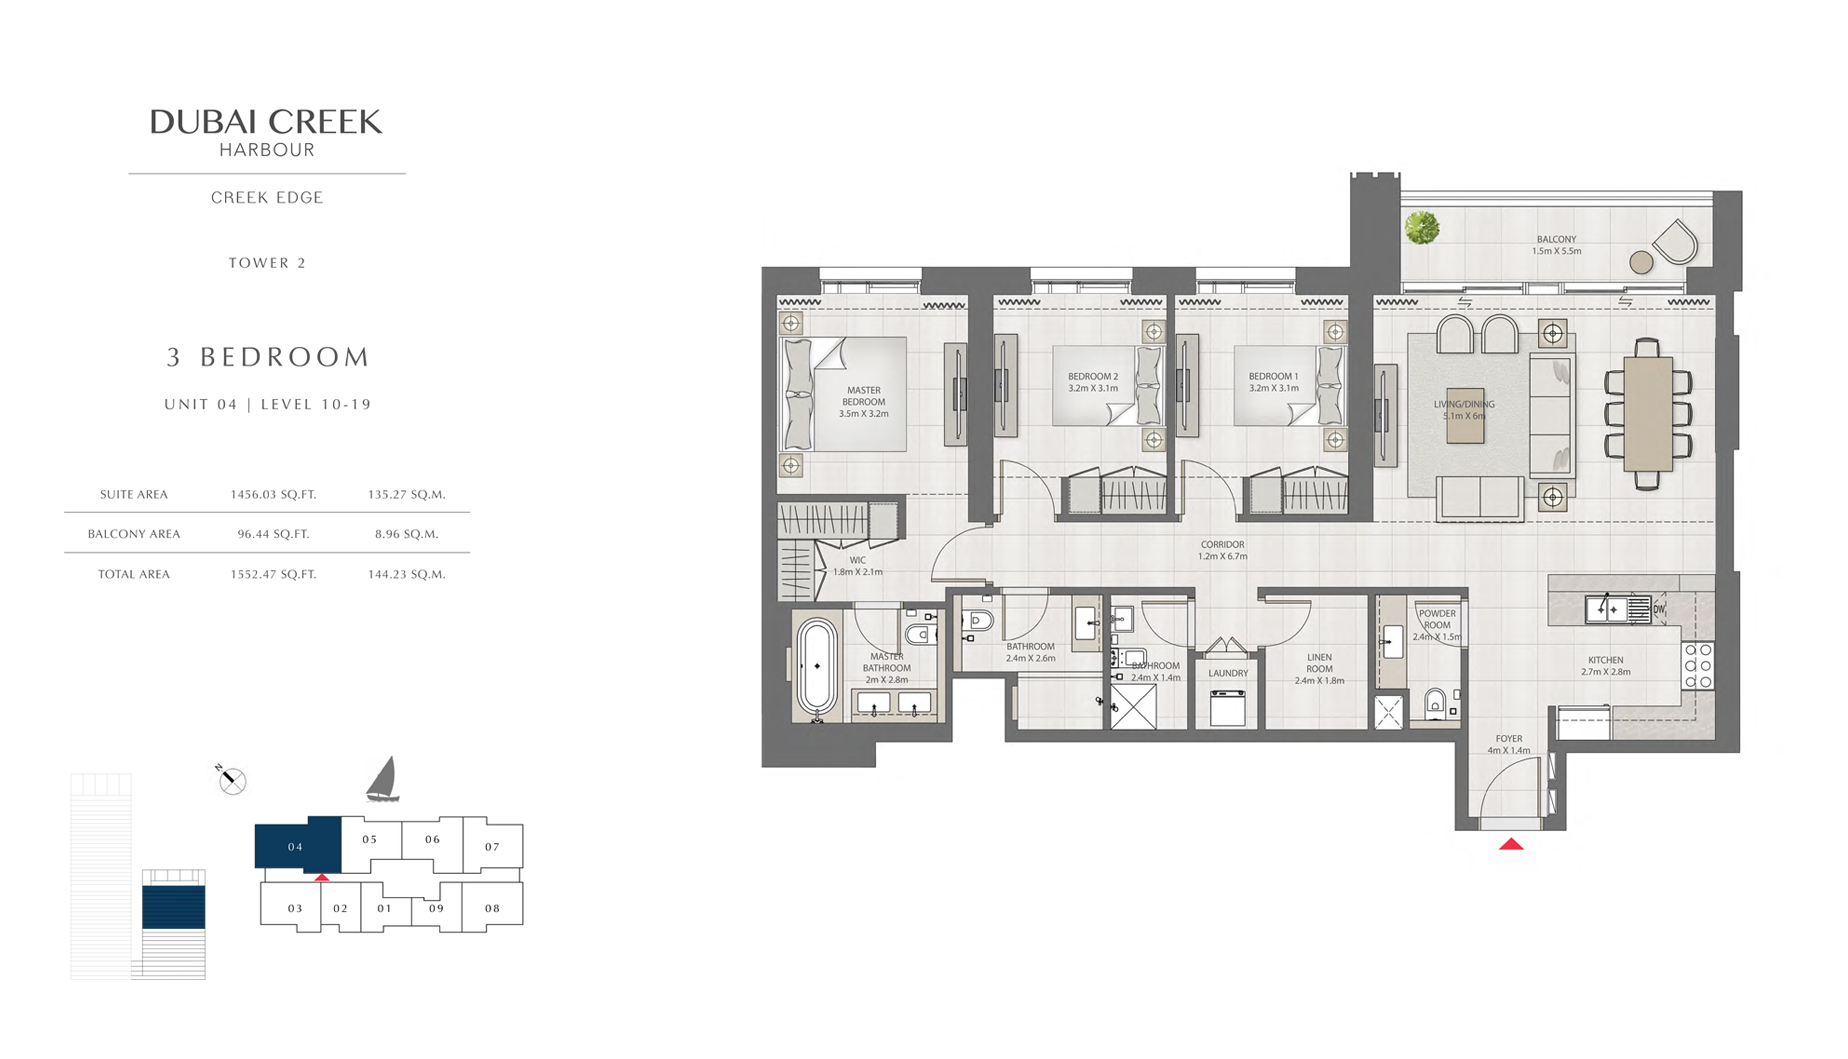 3 Bedroom Tower 2 Unit 04 Level 10-19 Size 1552 sq.ft